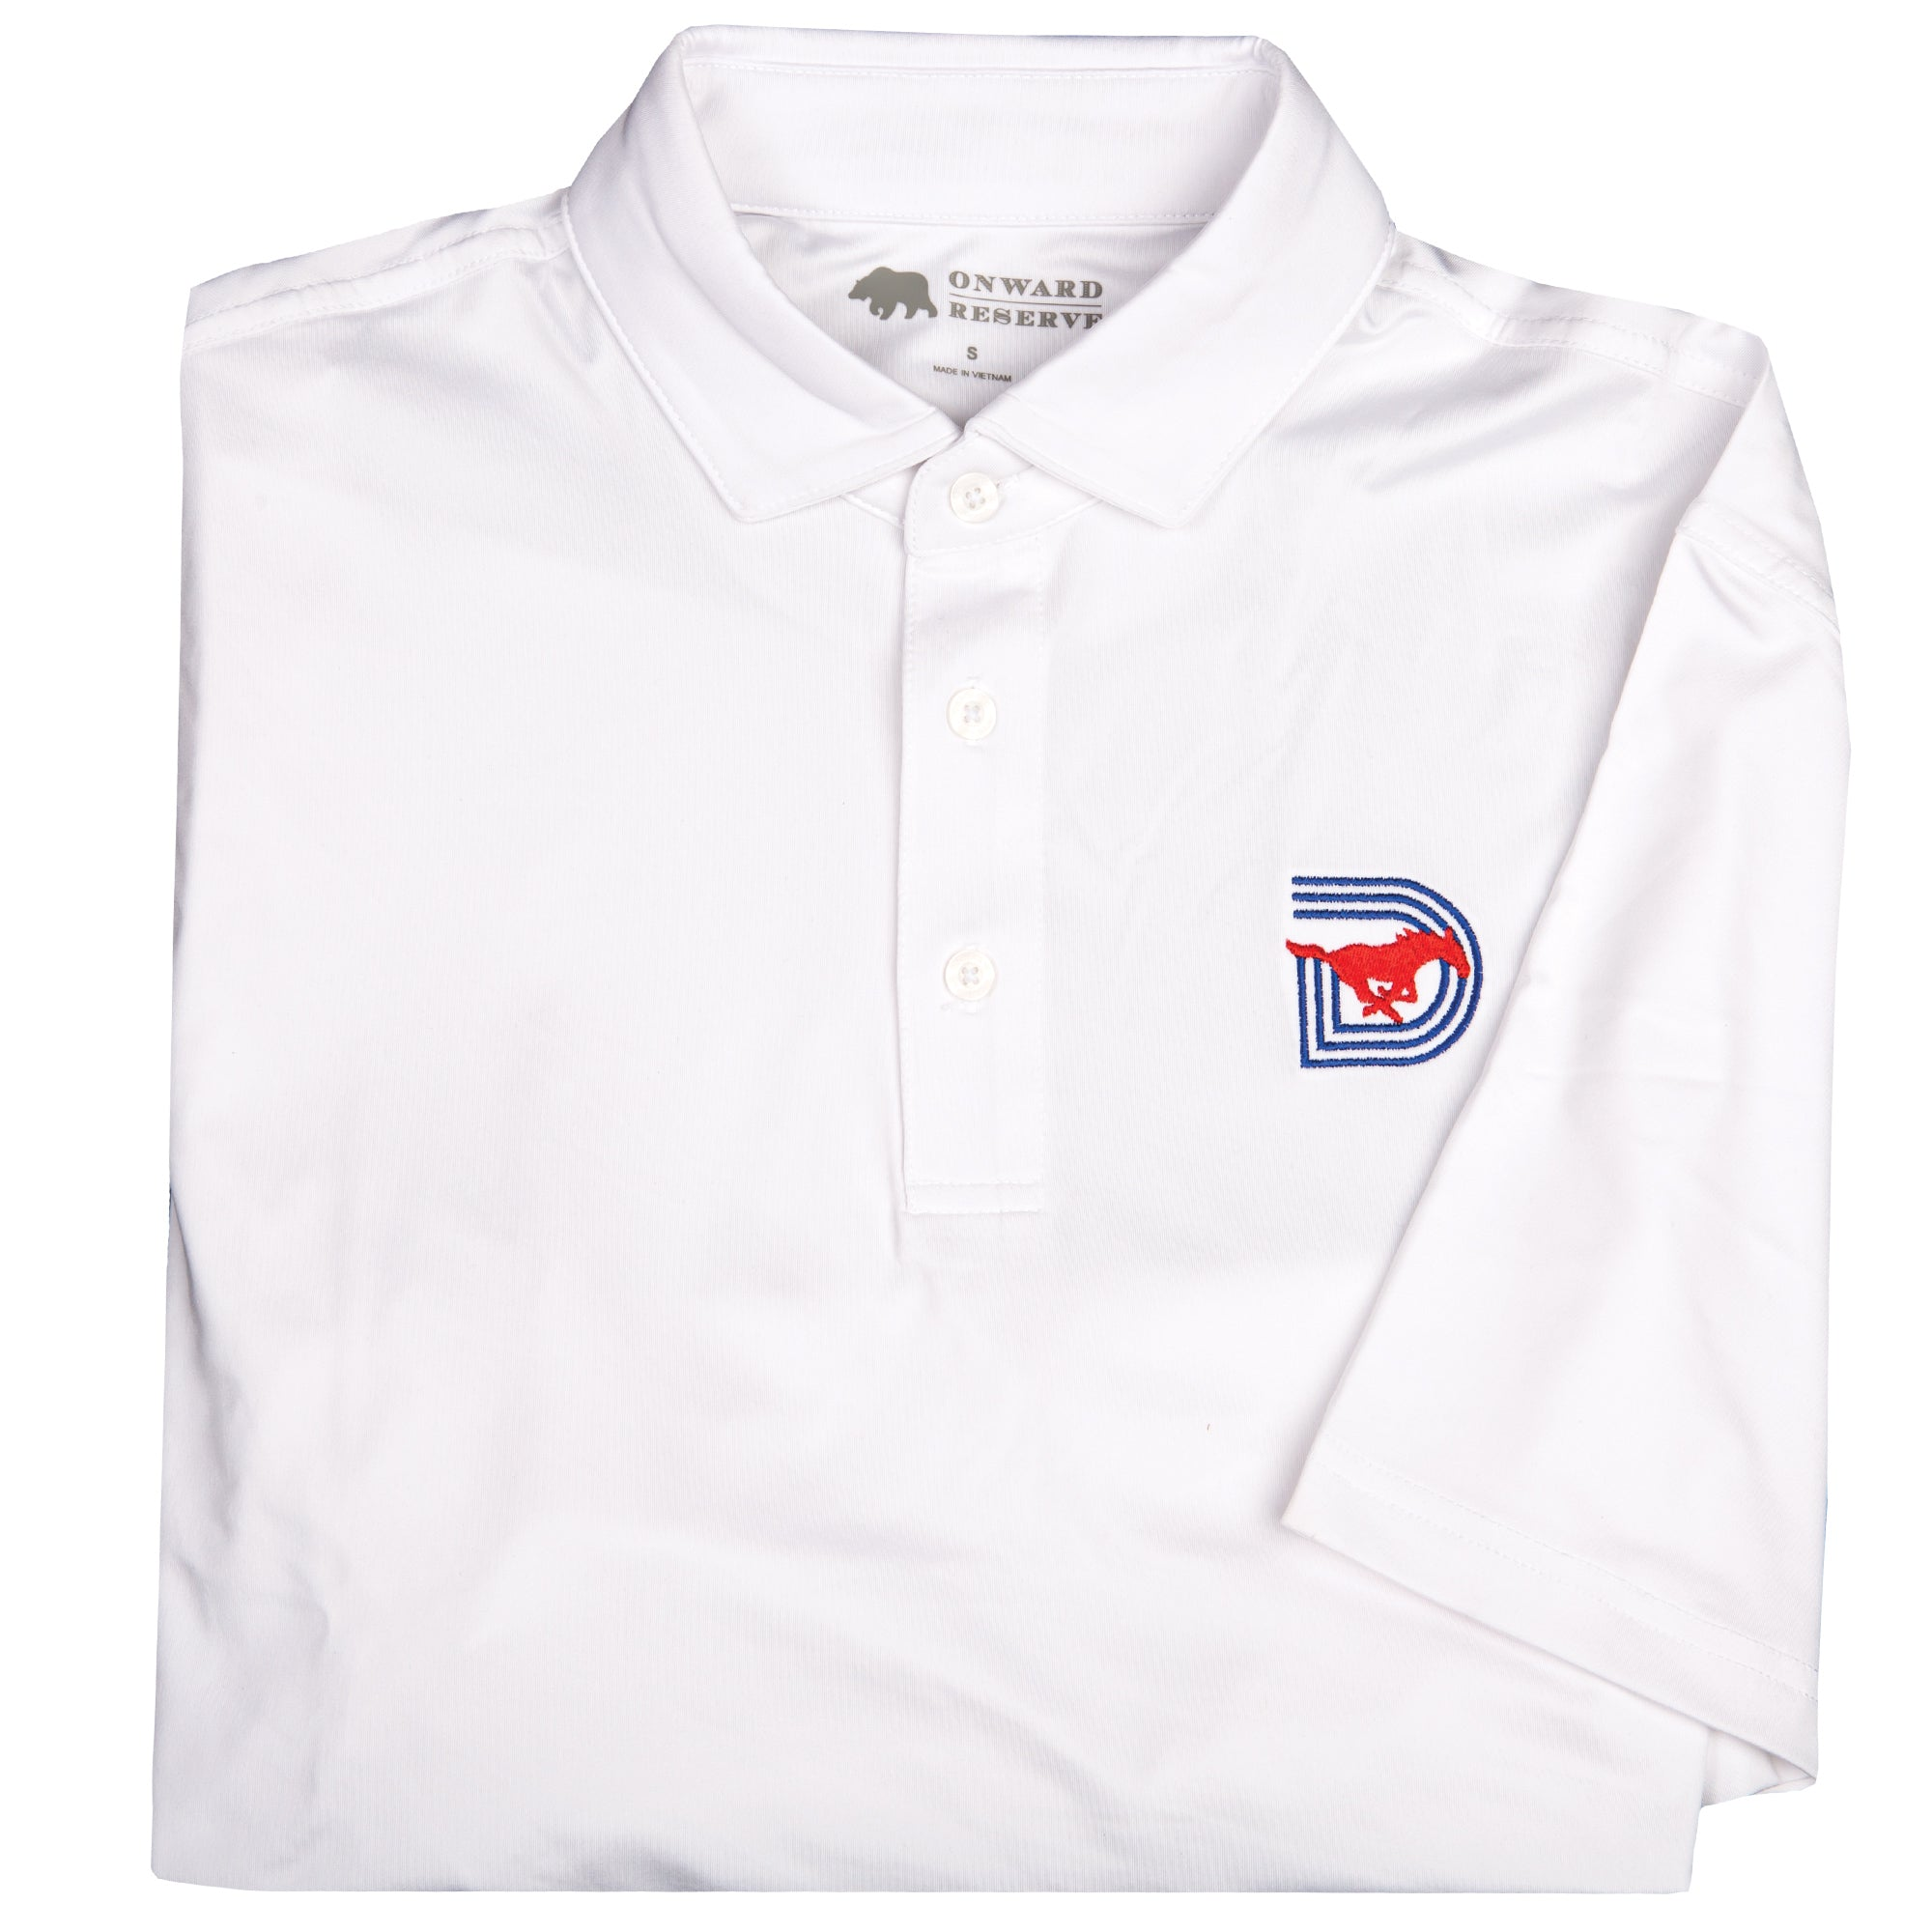 White SMU Triple D Polo - OnwardReserve